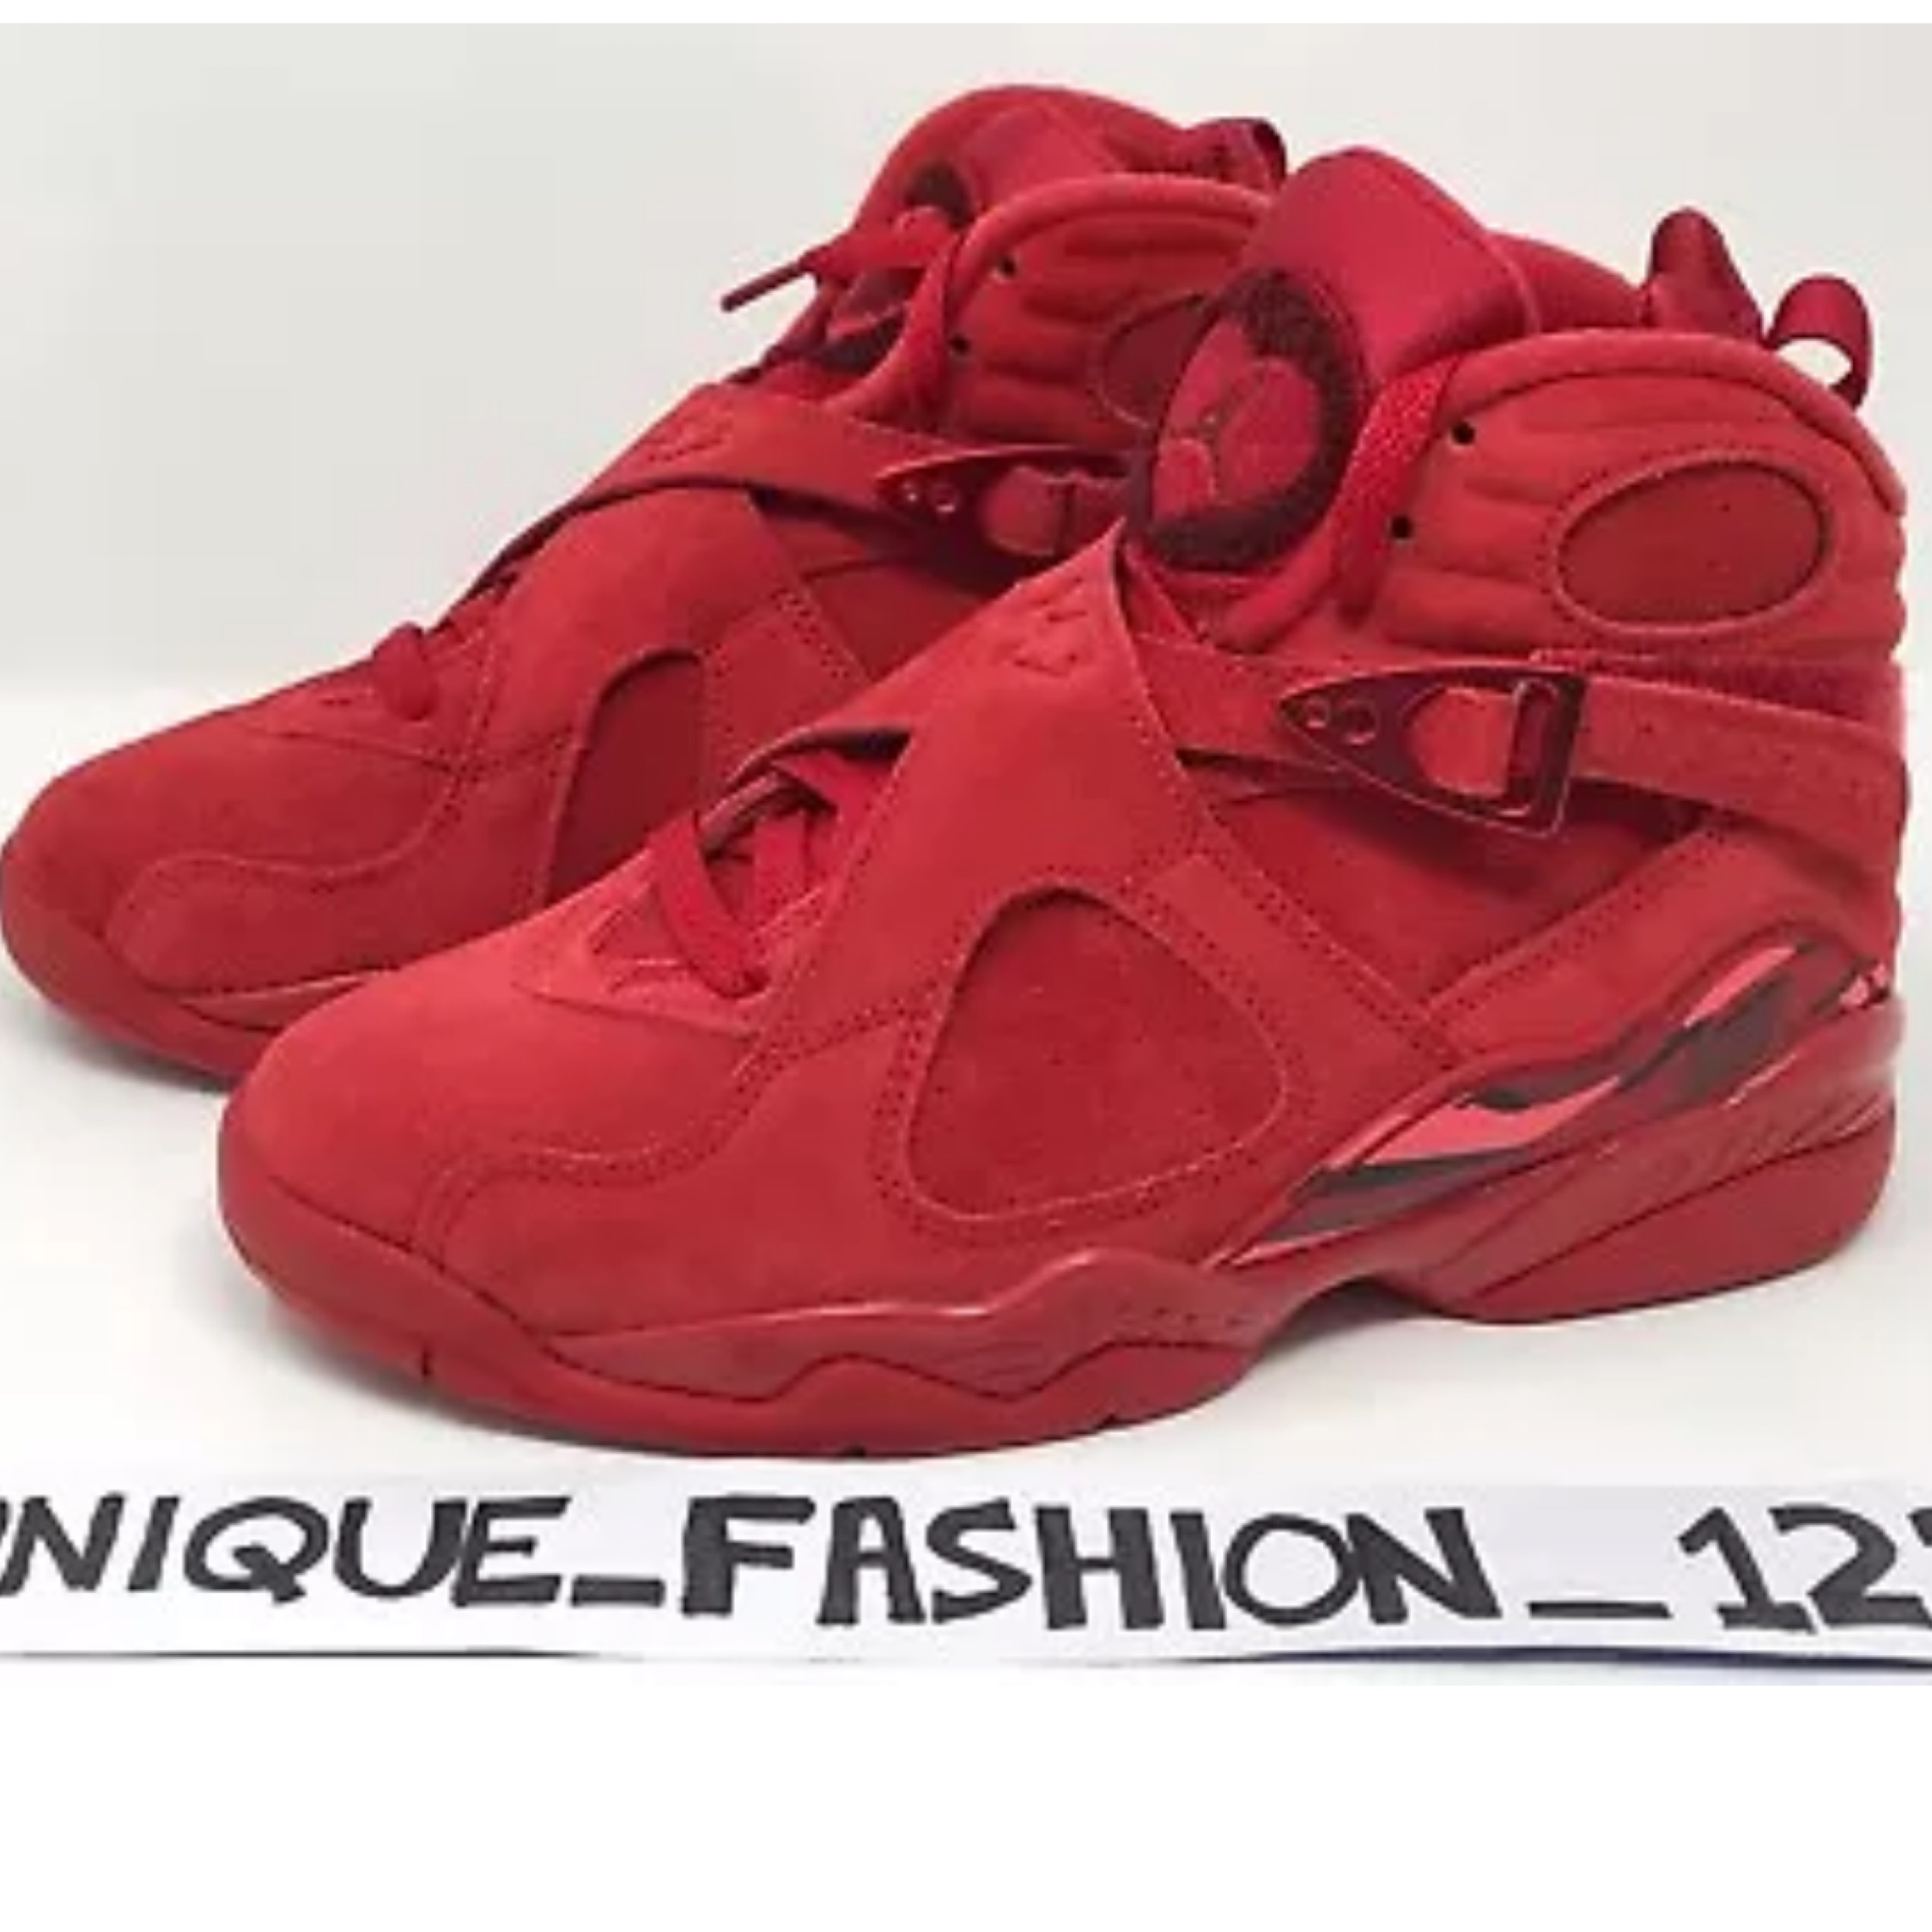 new product 88e90 feeb3 Nike Air Jordan 8 Valentines Day